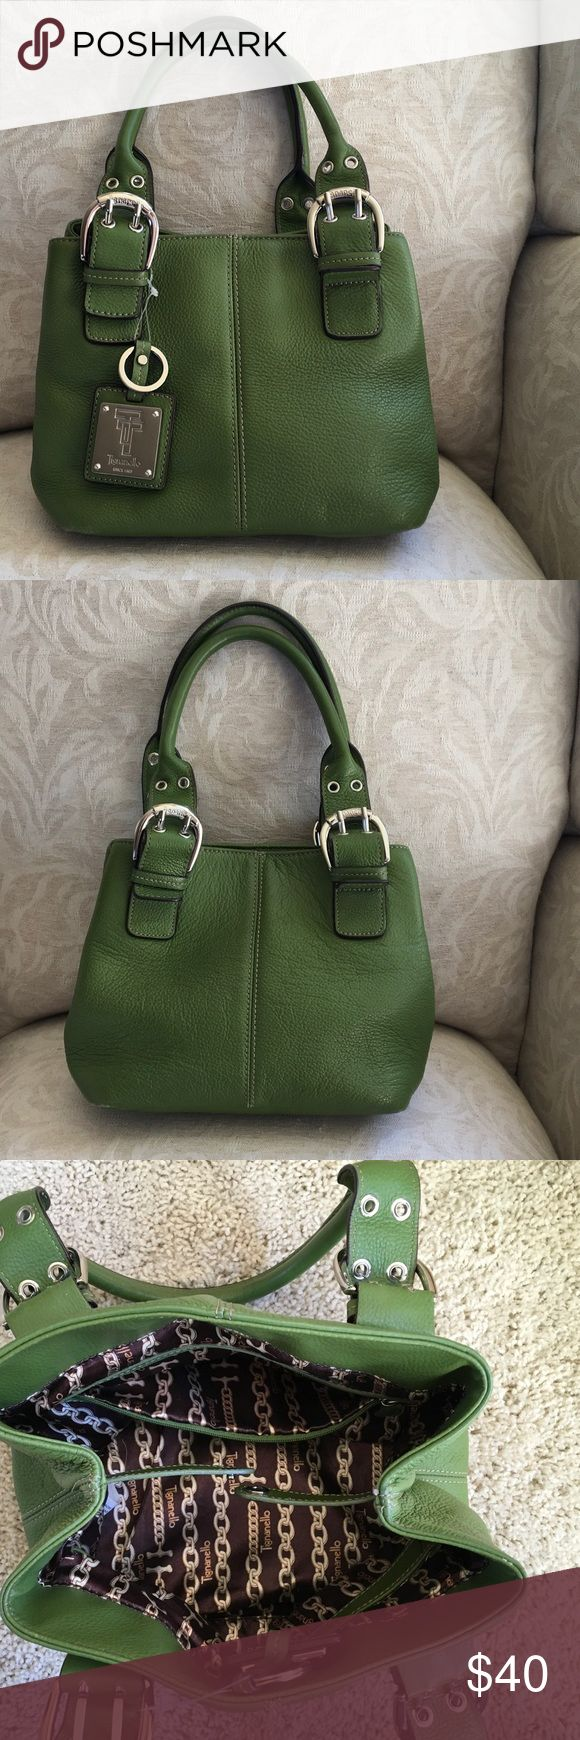 Treat Yourself to this great Tignanello Handbag! GUC. This is a very lovely green softened pebble leather bag with pockets in the interior. Matching keychain is still attached to use as a bag charm or key chain. Leather has some scuffs (see photos), but not noticeable when used. Tignanello Bags Satchels